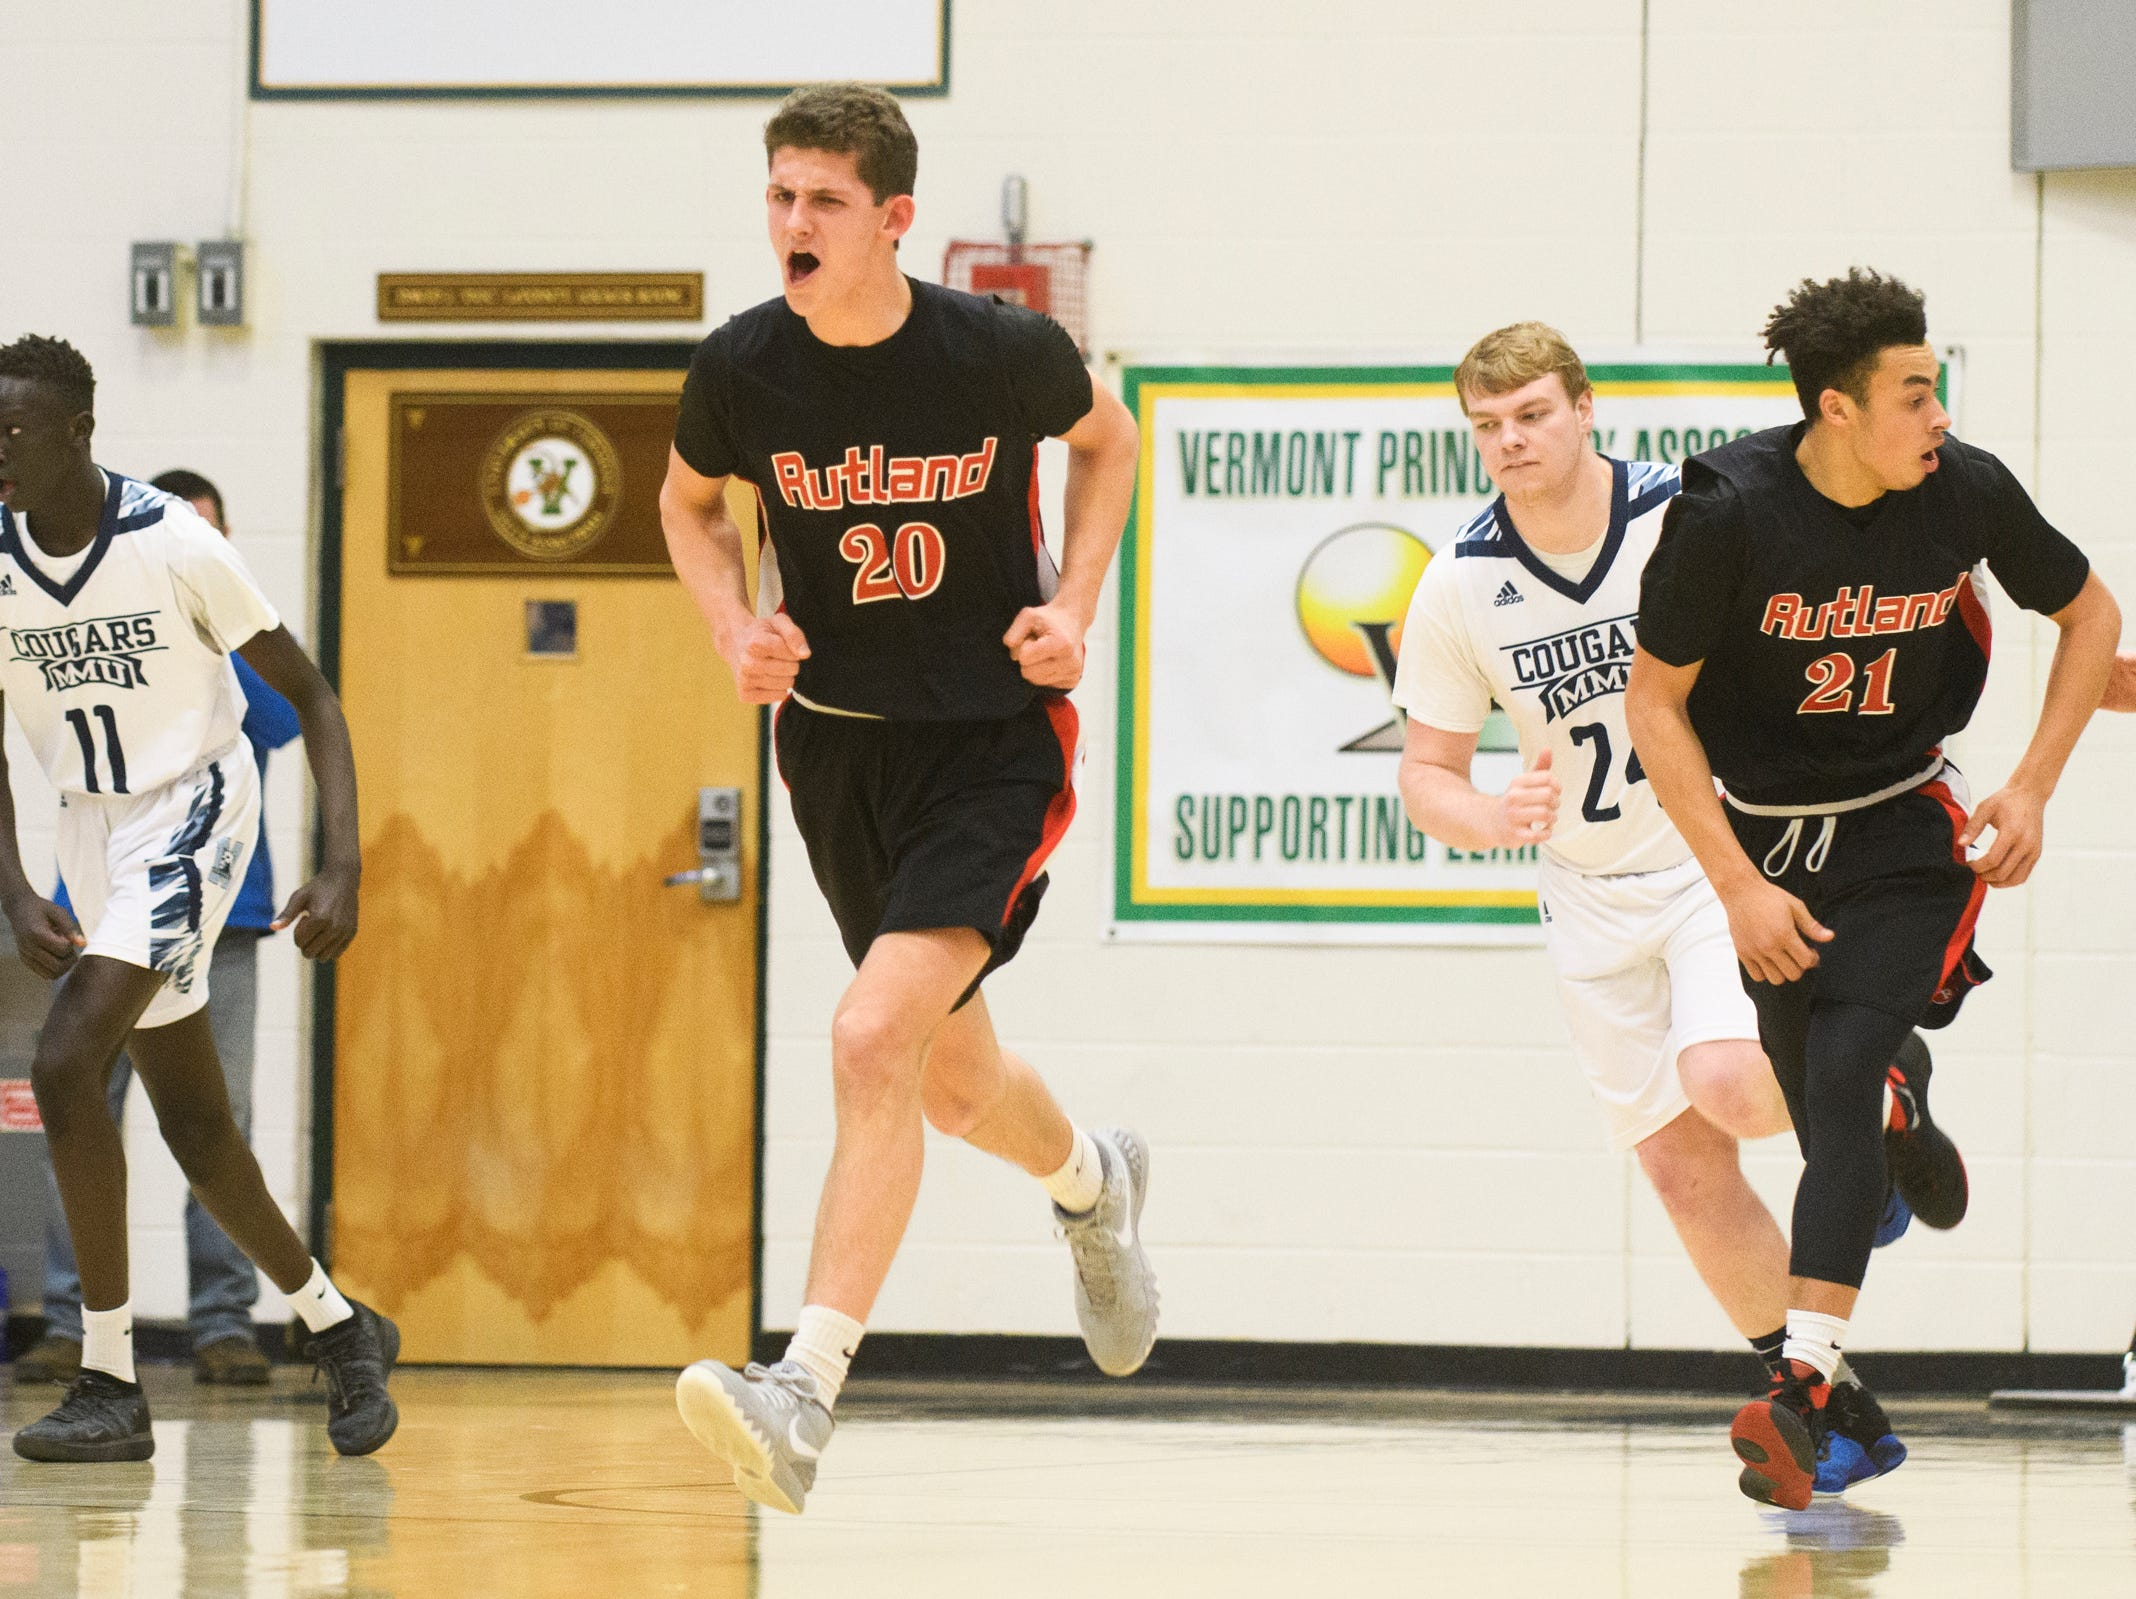 Rutland's Eric Coughlin (20) celebrates a three pointer during the boys DI semi final basketball game between the Rutland Raiders and the Mount Mansfield Cougars at Patrick Gym on Monday night March 11, 2019 in Burlington, Vermont.